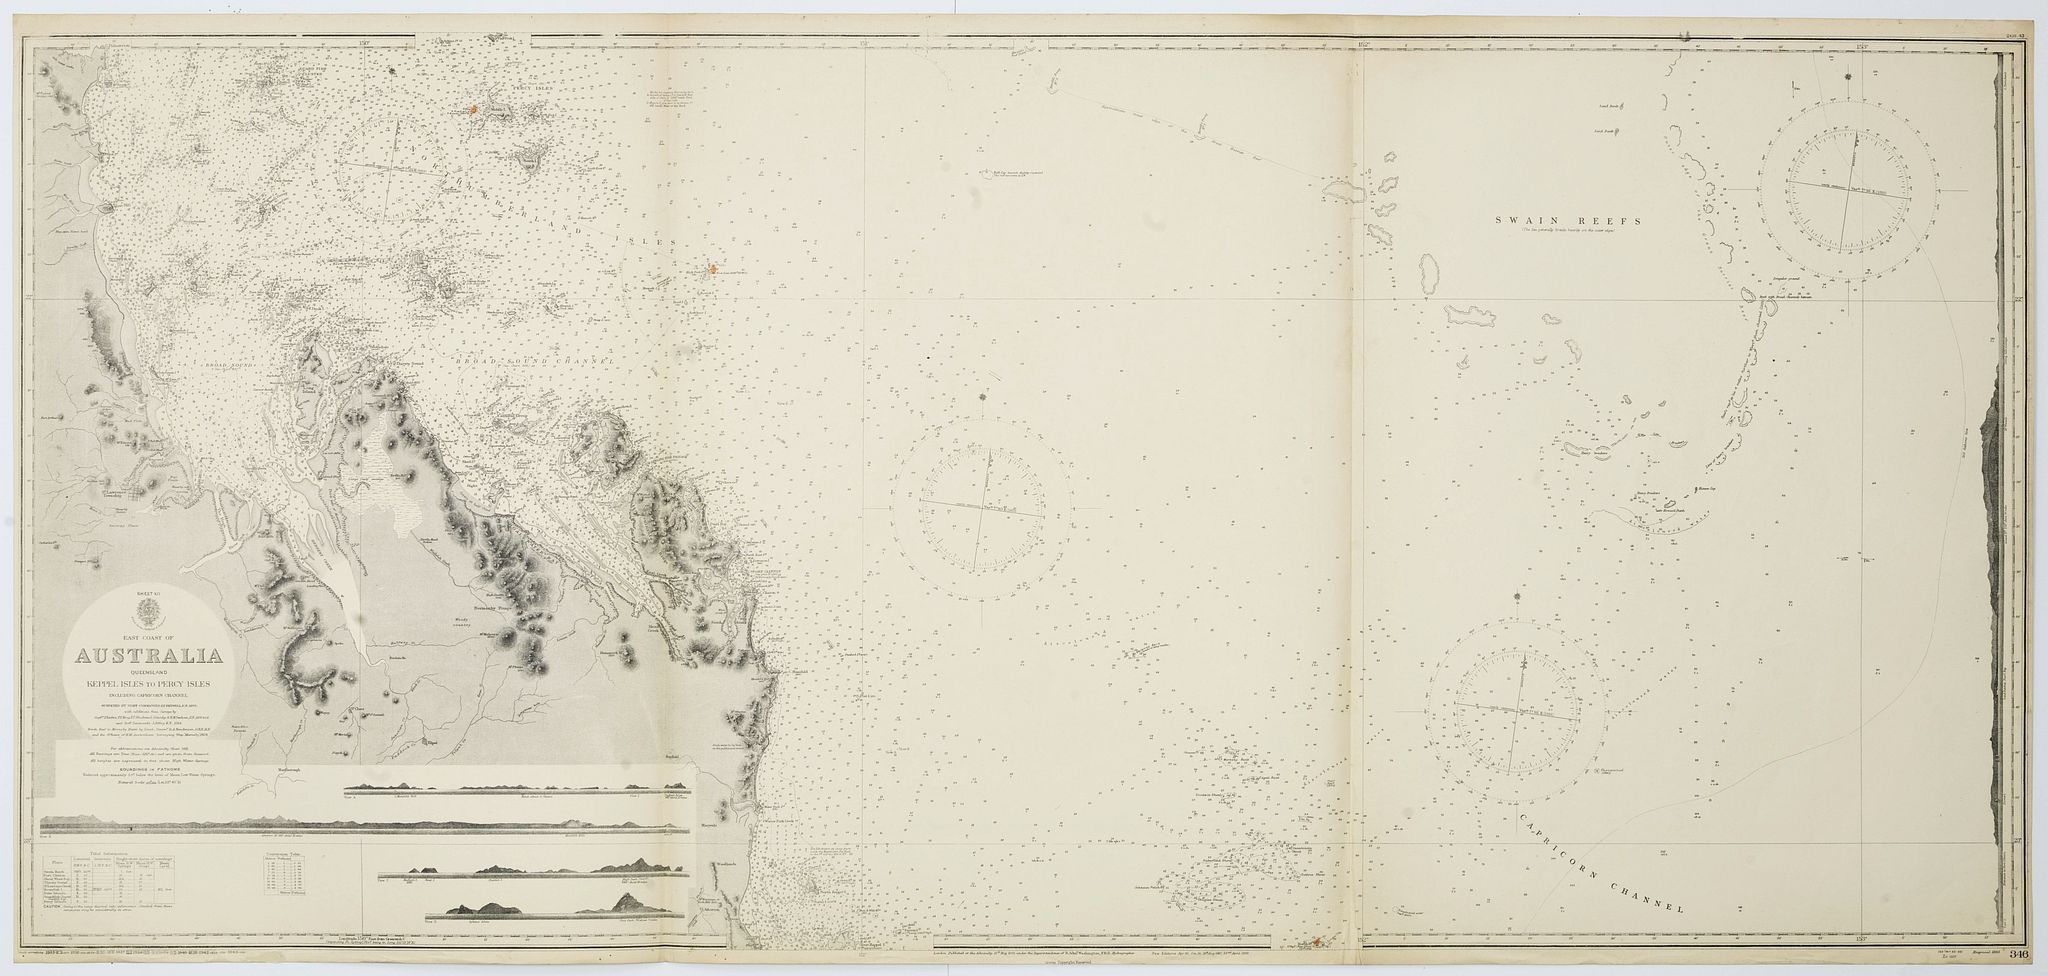 THE HYDROGRAPHIC OFFICE OF THE ADMIRALTY -  Sheet XII East coast of Australia Queensland Keppel Isles to Percy Isles. . .